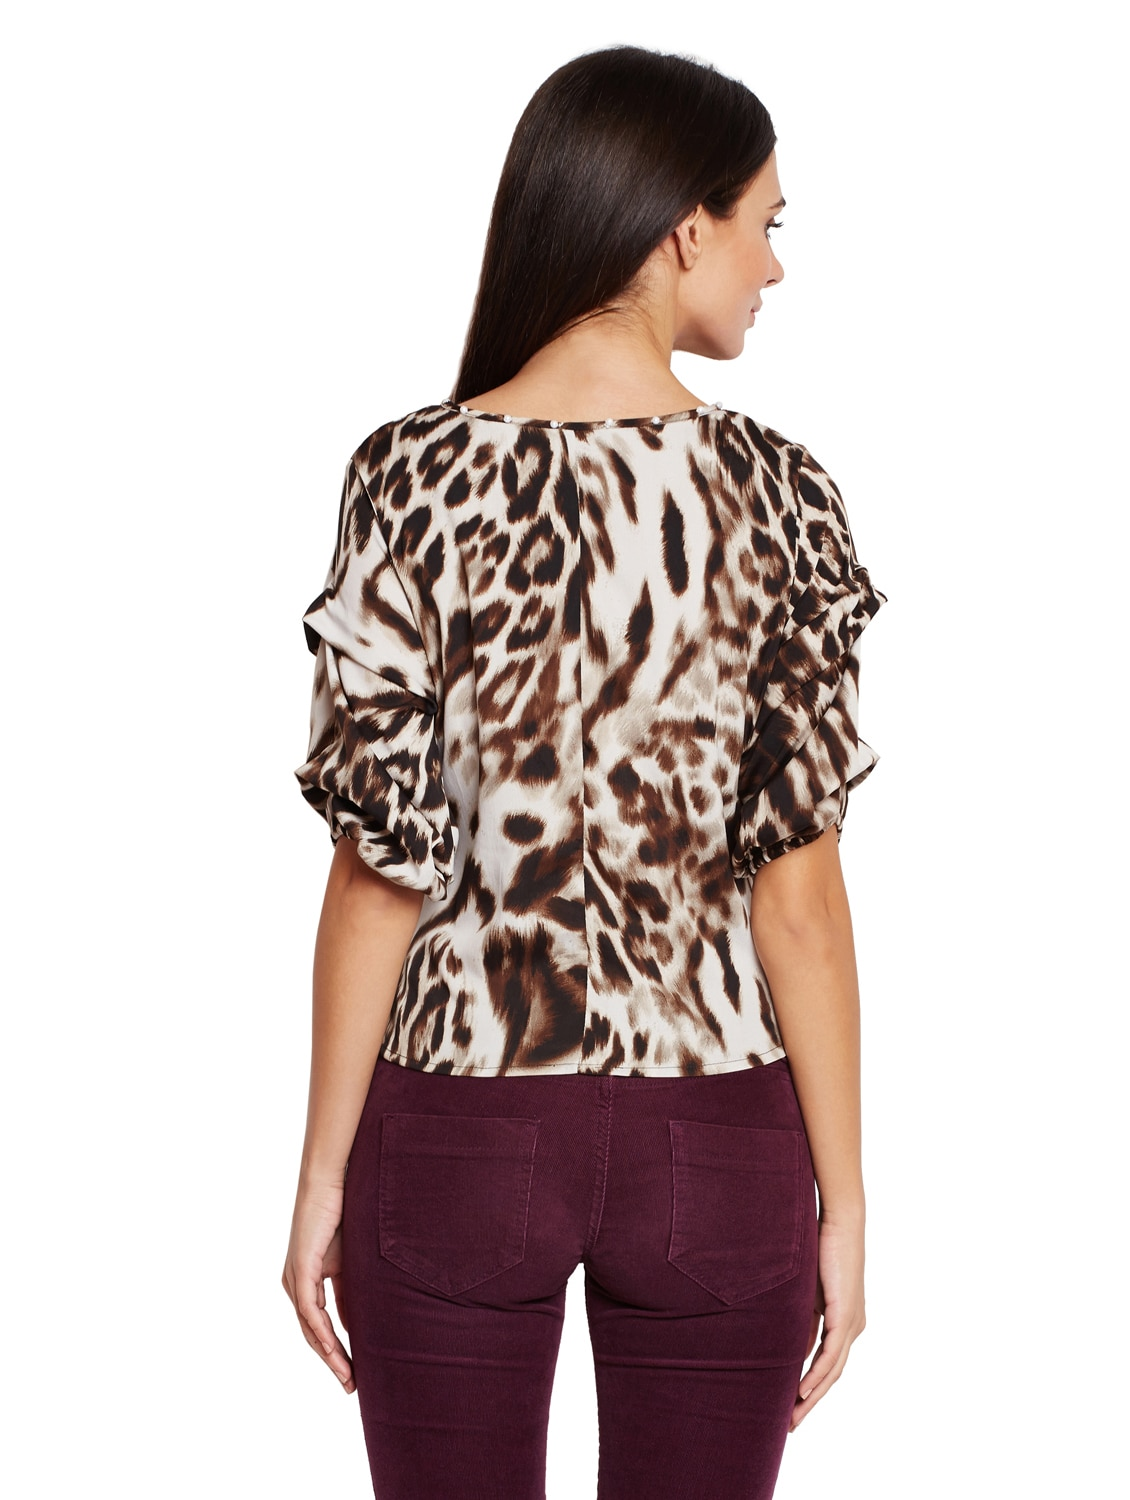 3dced6695782ea Buy Tie Up Front Animal Print Top for Women from Oxolloxo for ₹623 at 52%  off